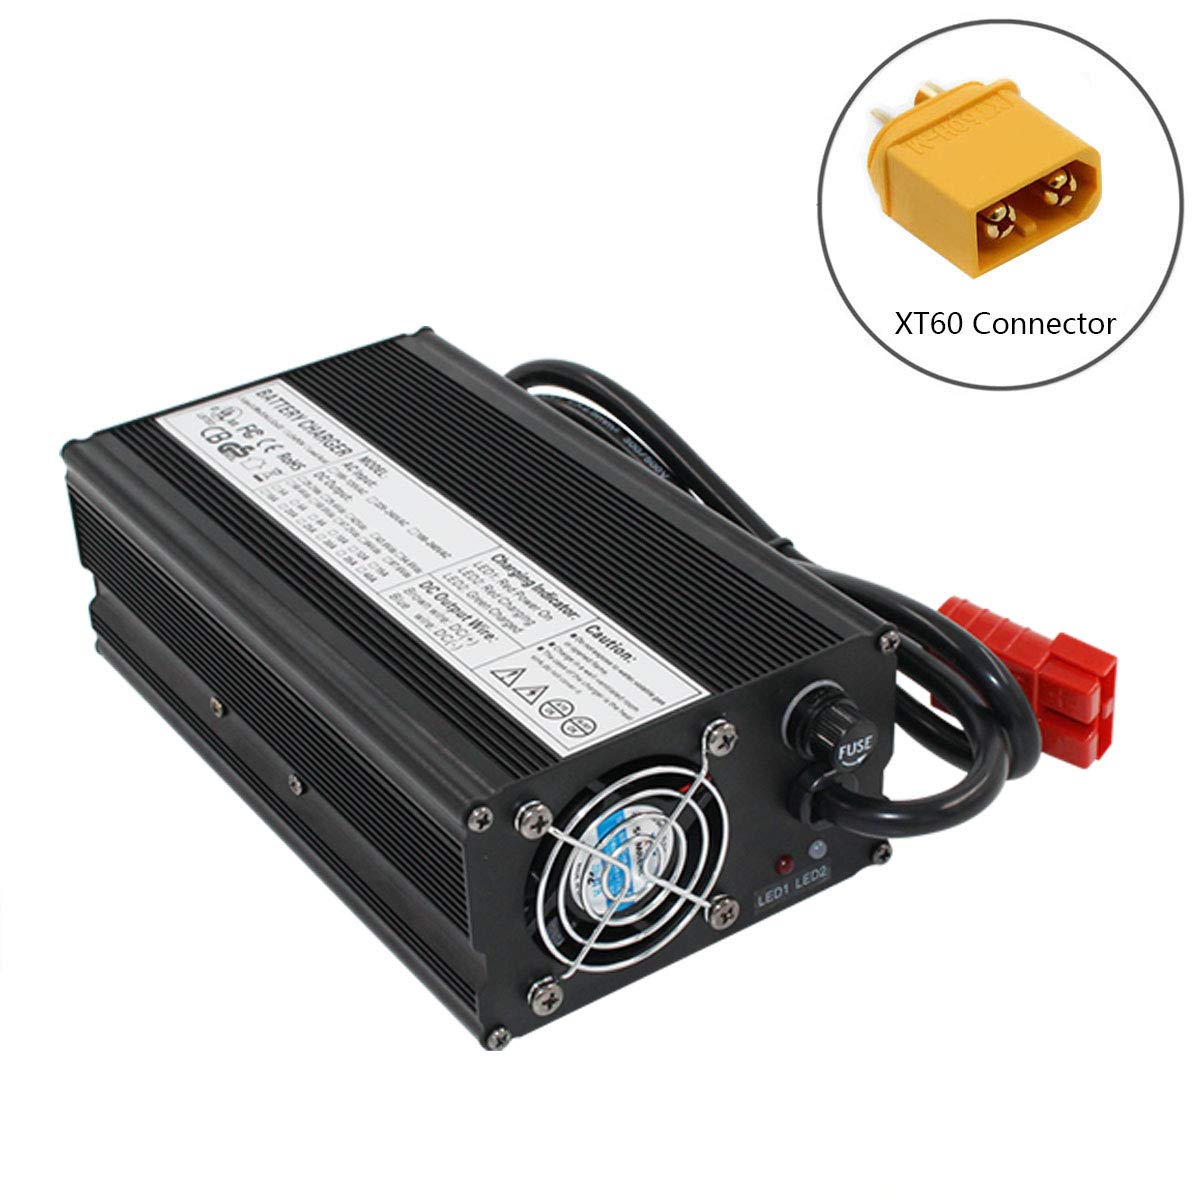 Amazon.com: 84V 6A Charger 20S 72V Li-ion Battery Smart ...